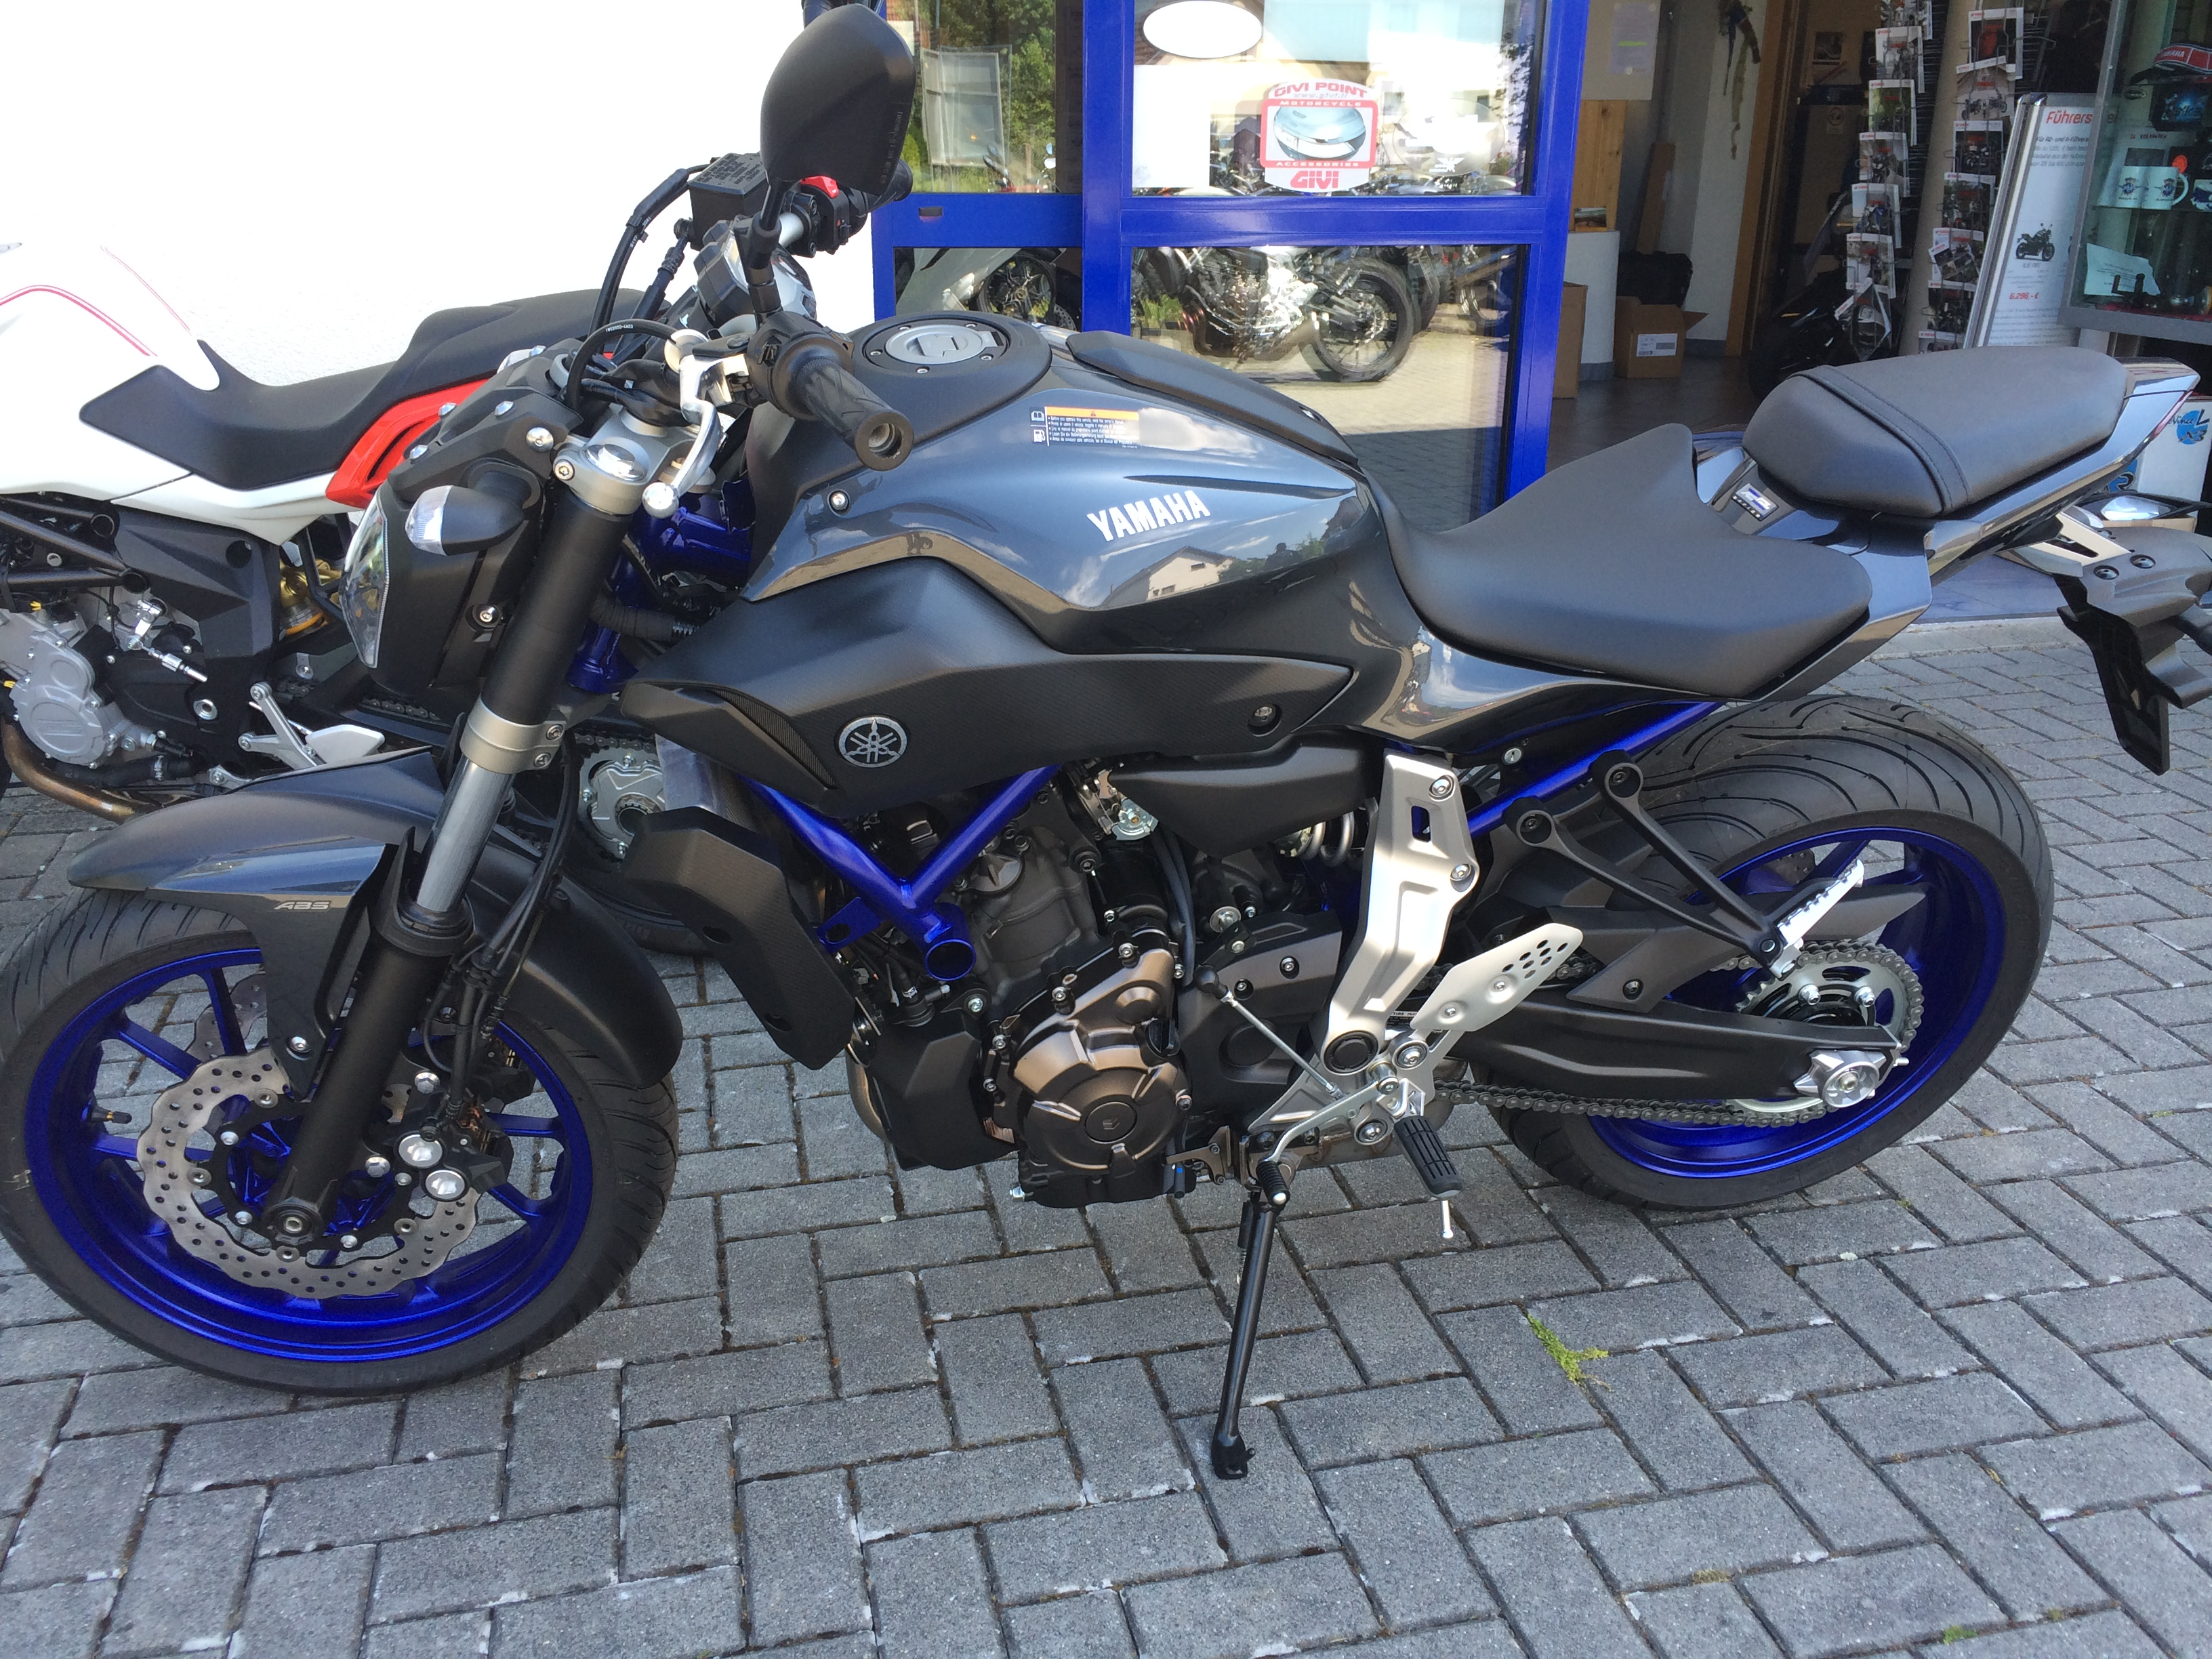 Unsere Gedrosselte: Yamaha MT 07 ABS